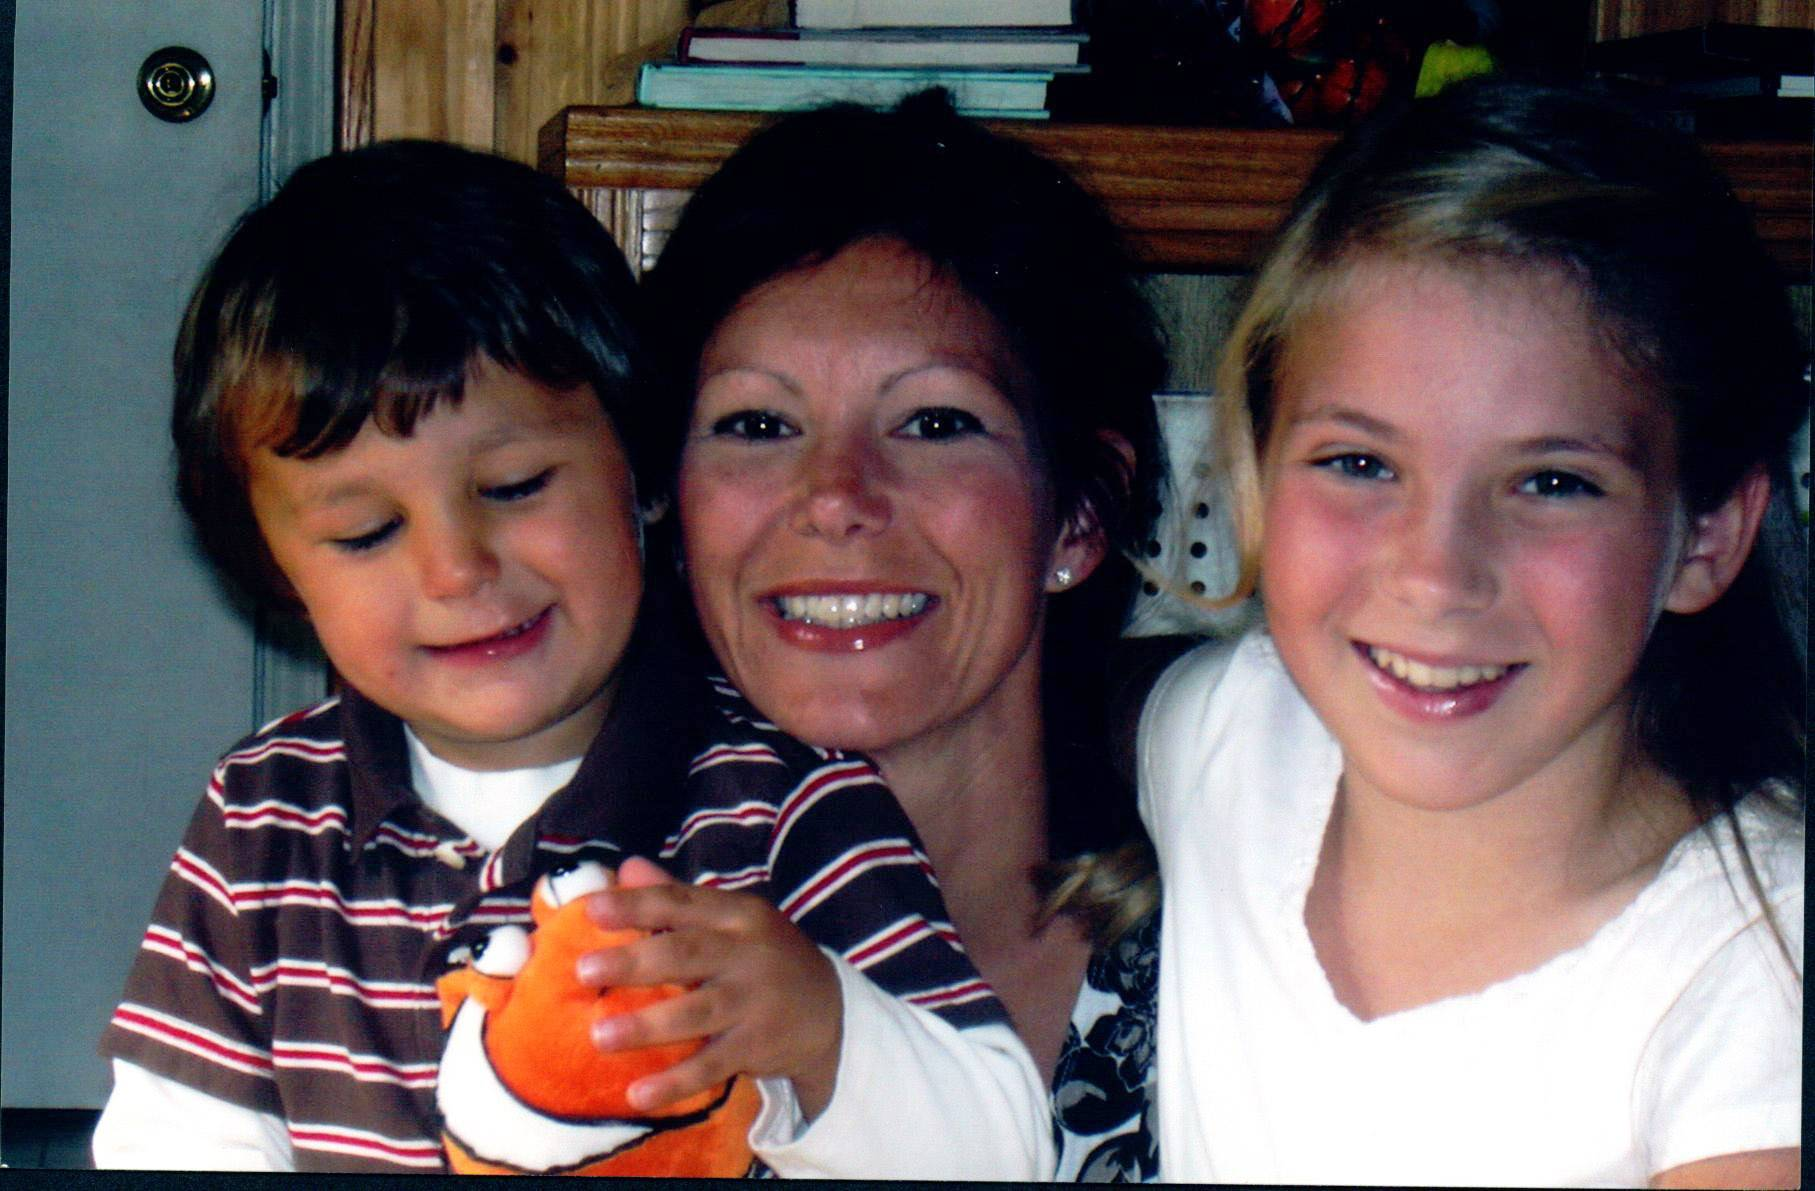 An earlier photo of Karen Wessel with her children, Michael, and Elizabeth.